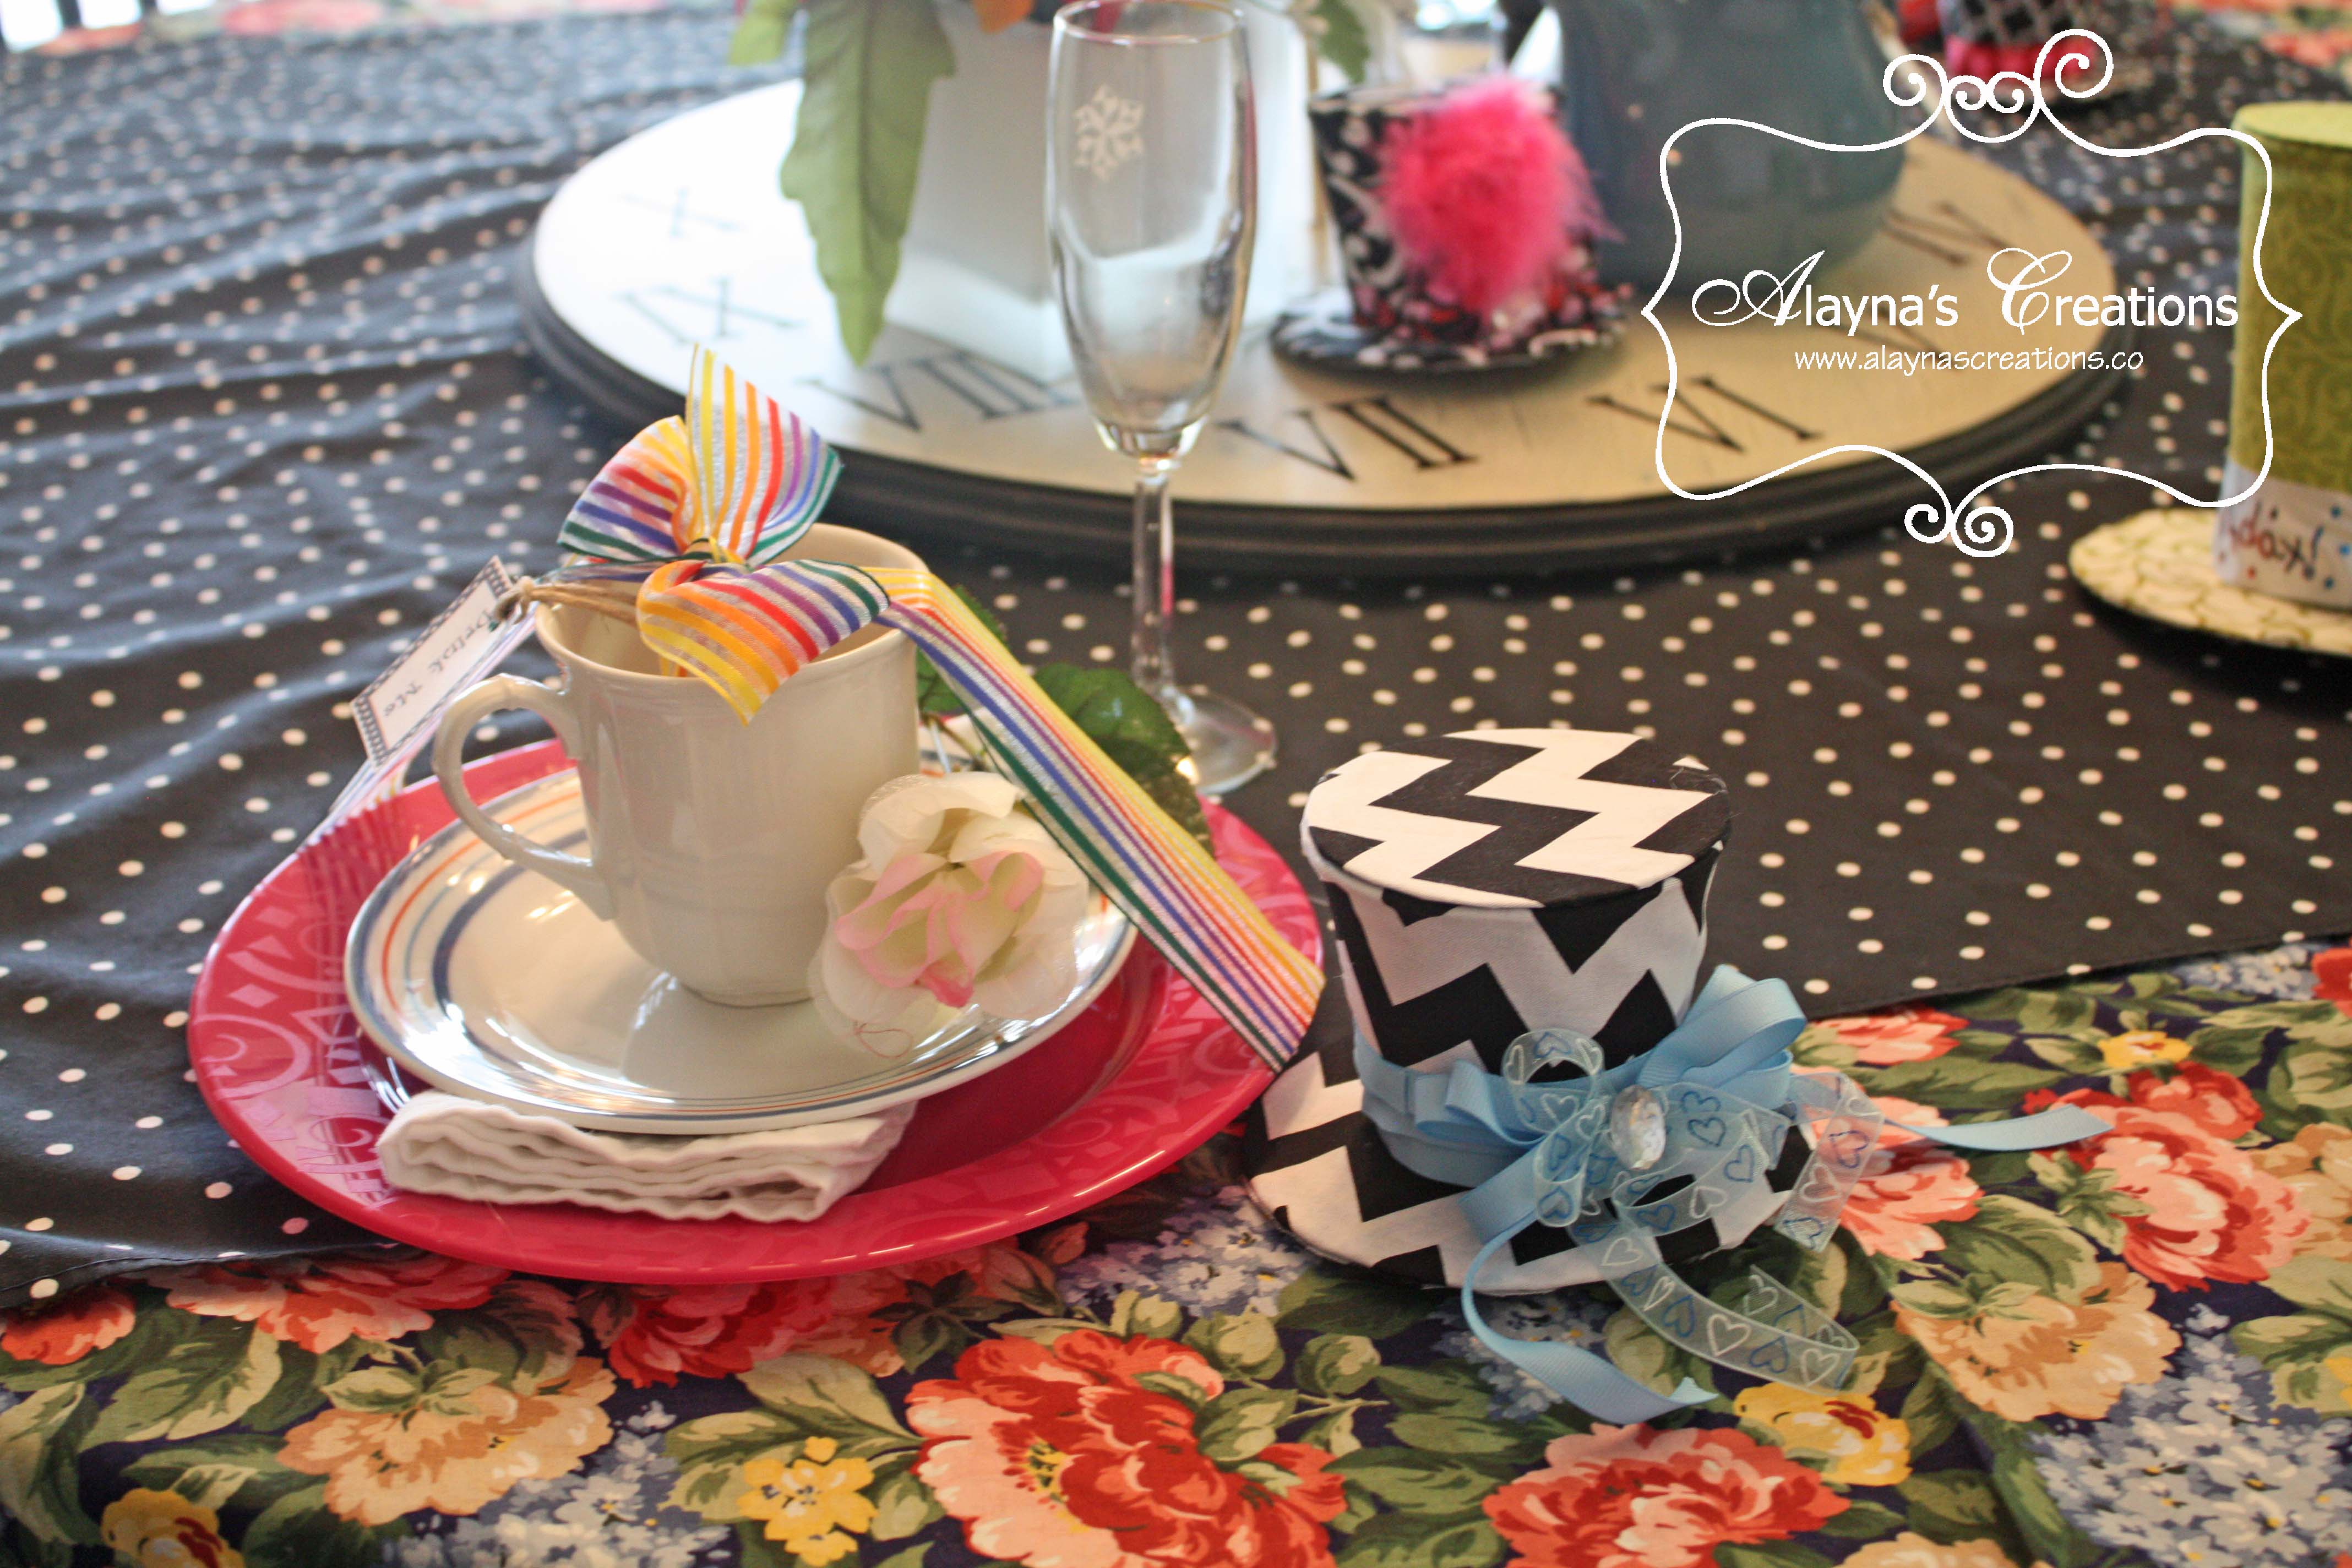 Alice in Wonderland Archives - DIY home decor and crafts